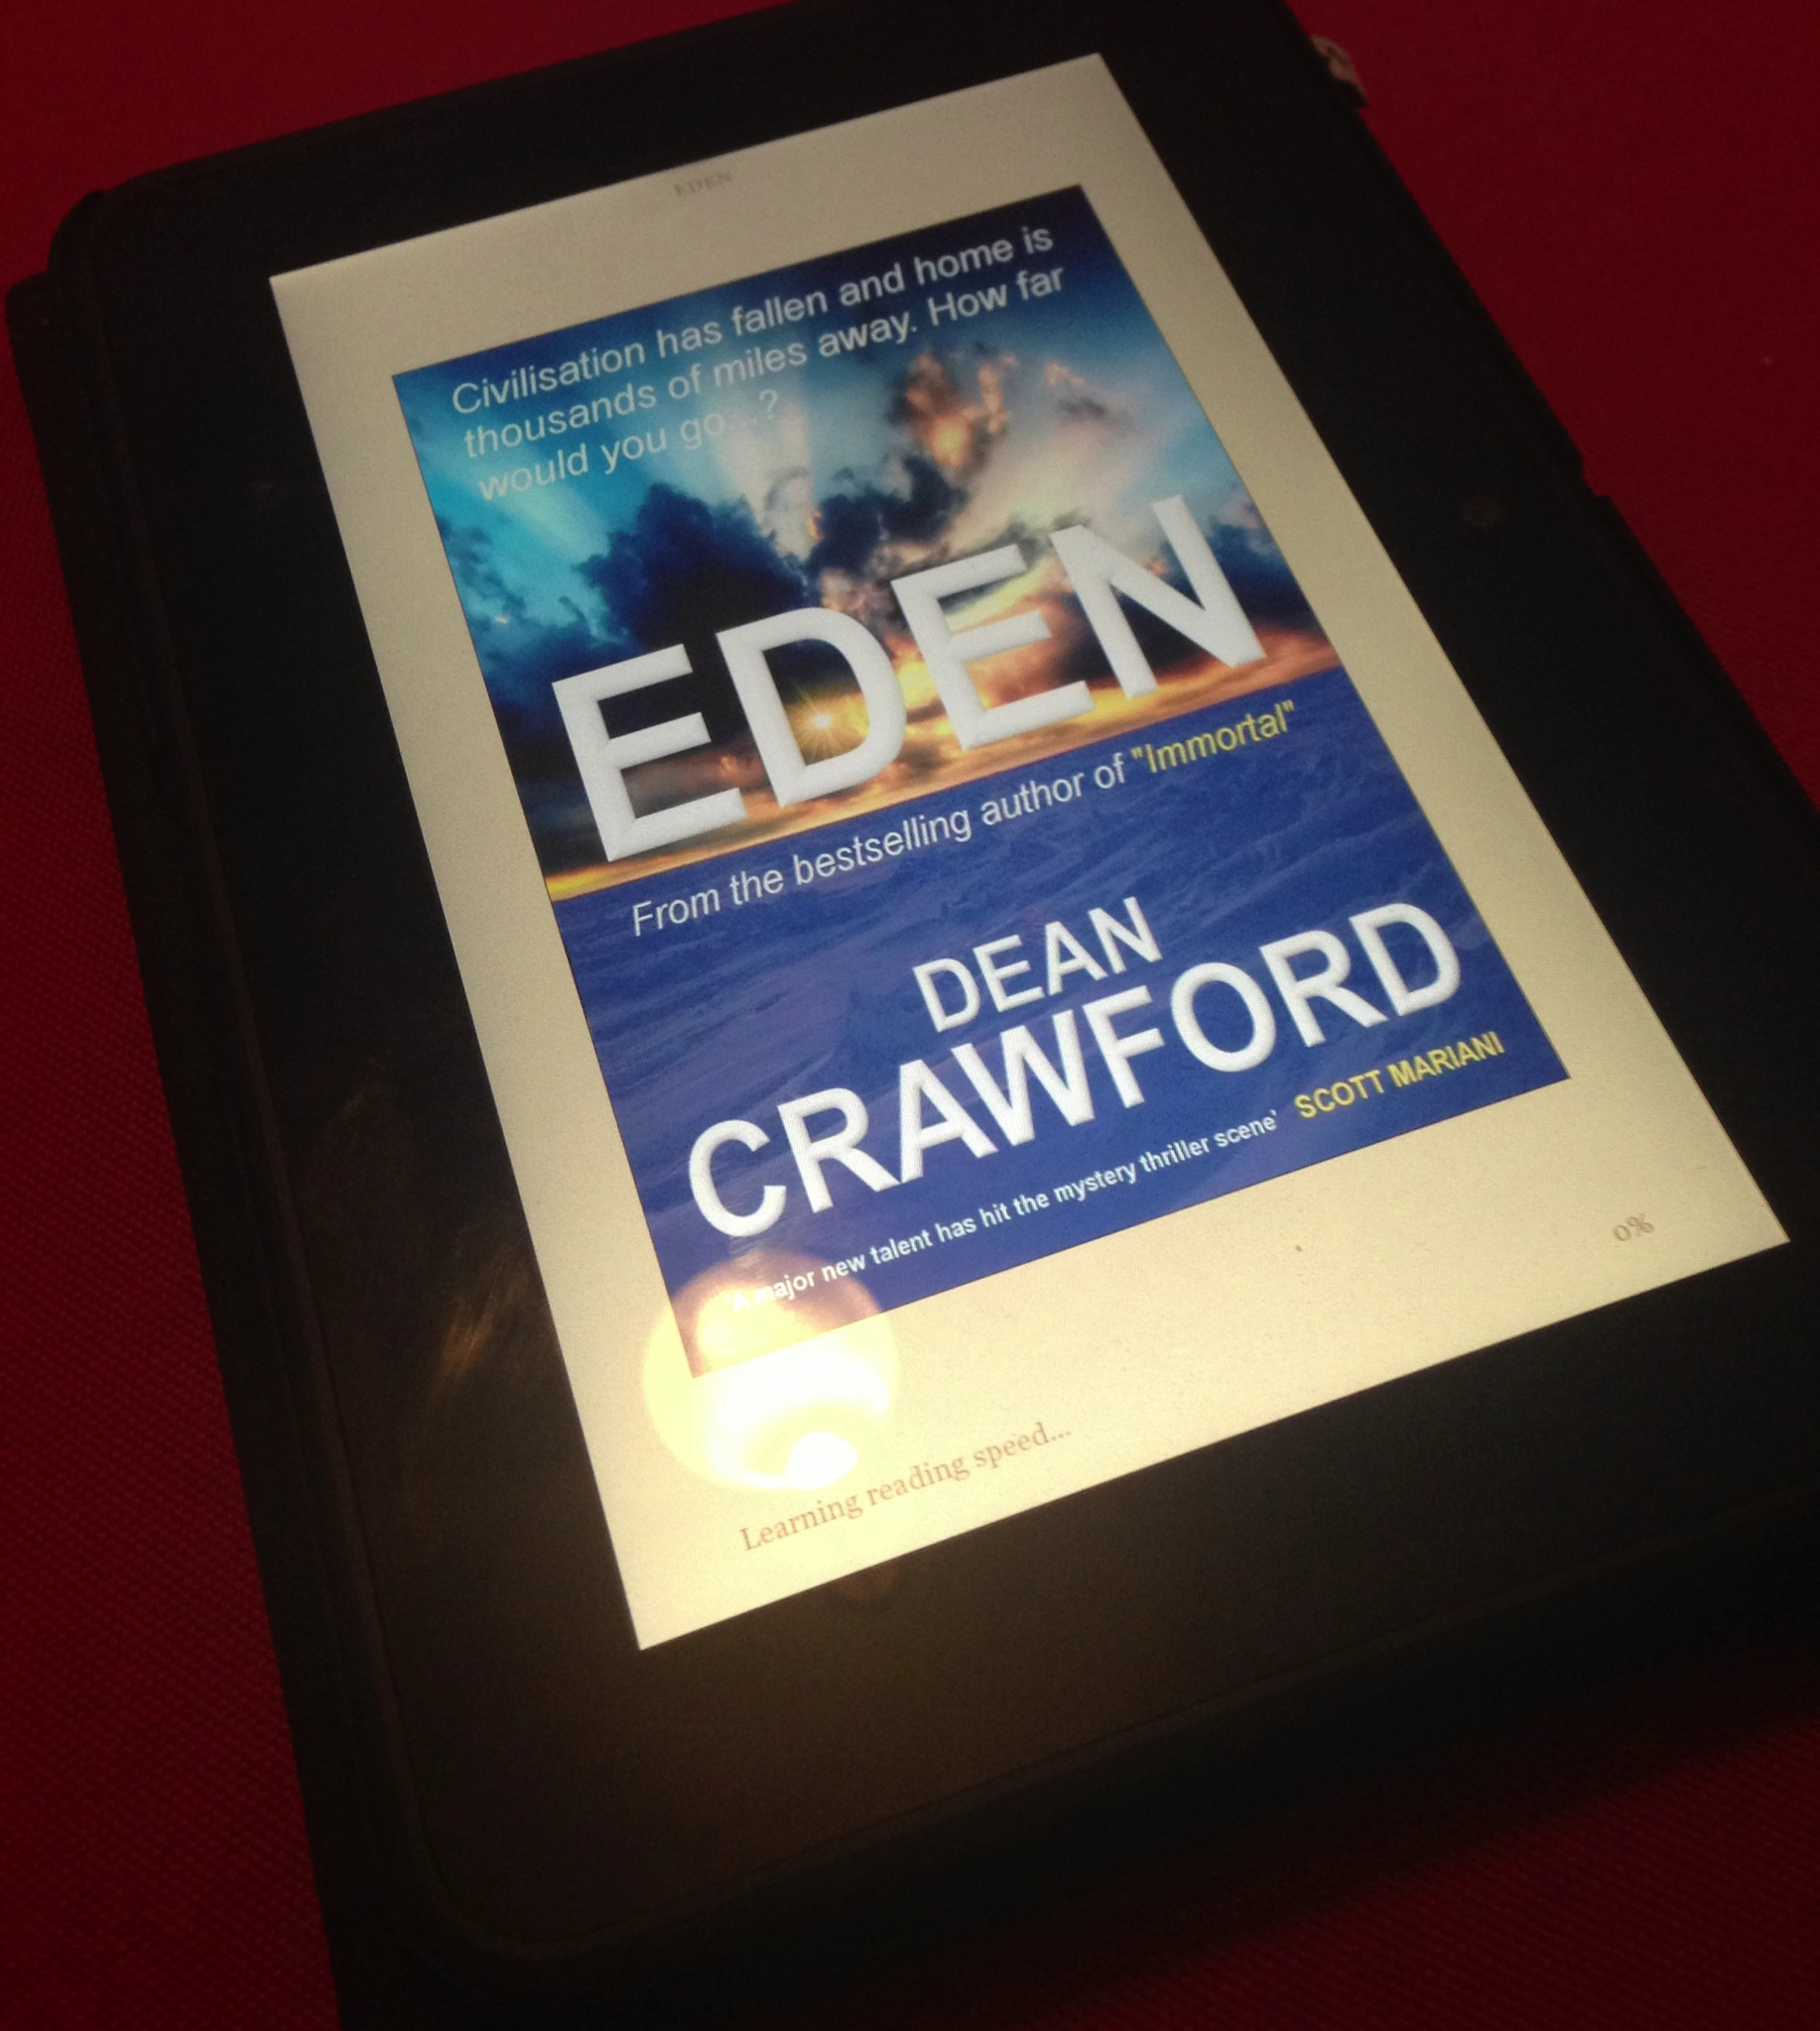 Review: Eden by Dean Crawford